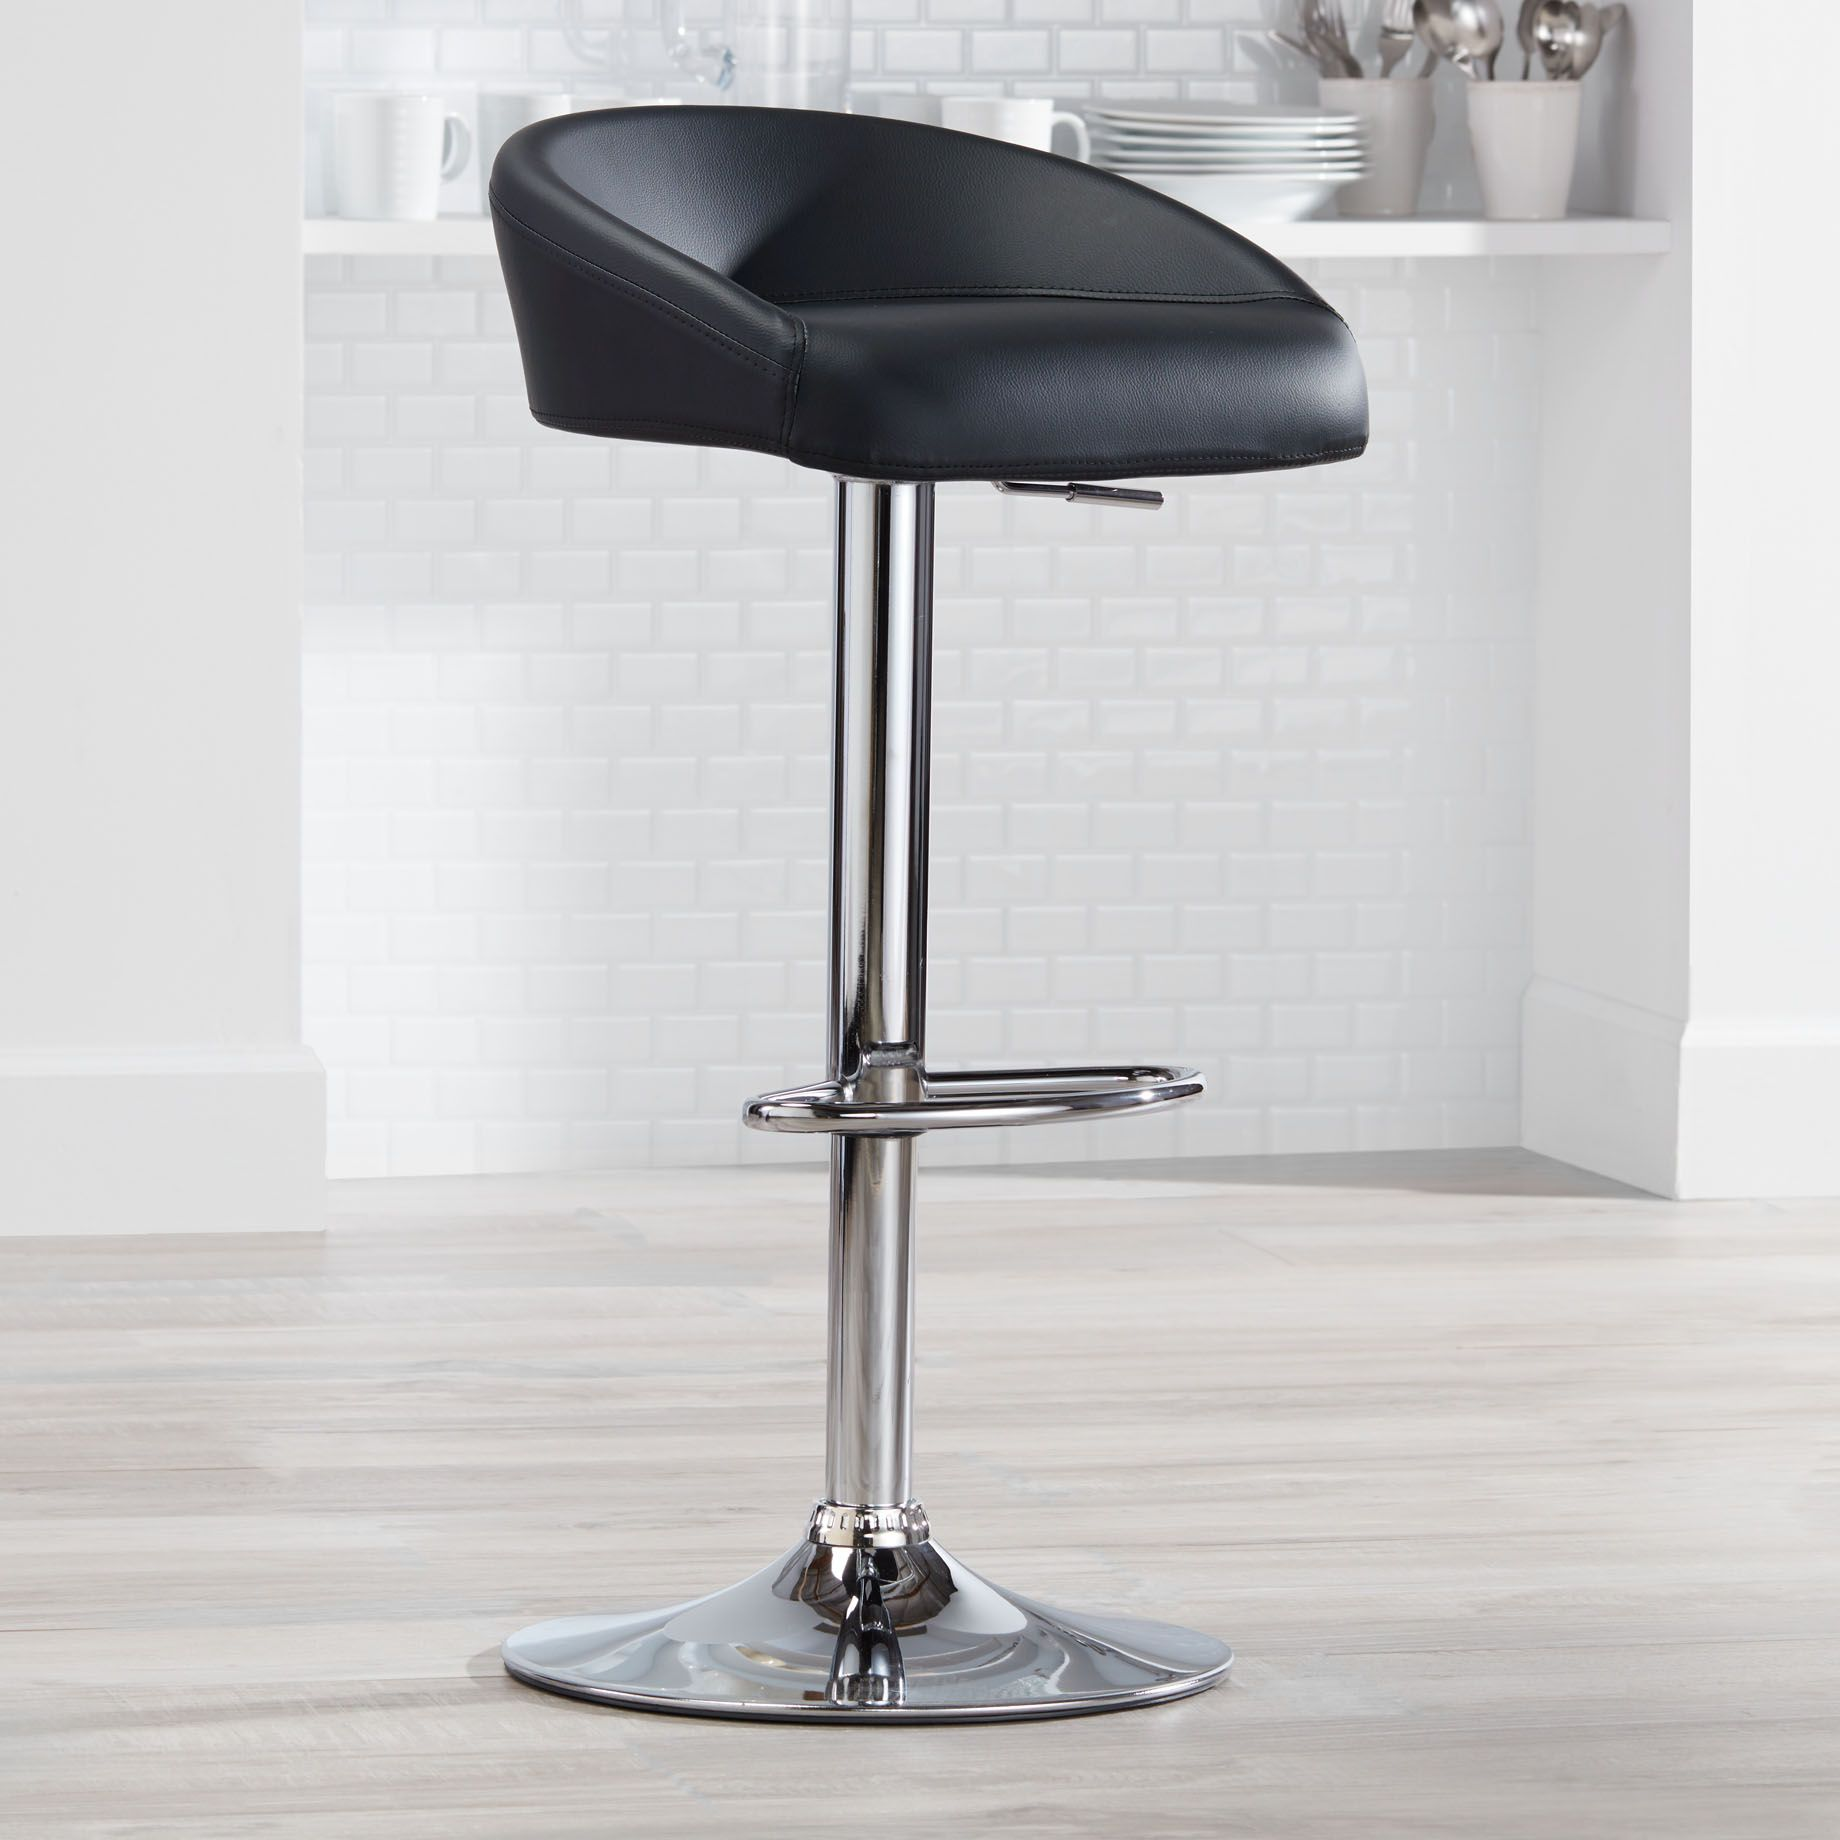 Merveilleux Fargo Black Faux Leather Adjustable Swivel Bar Stool